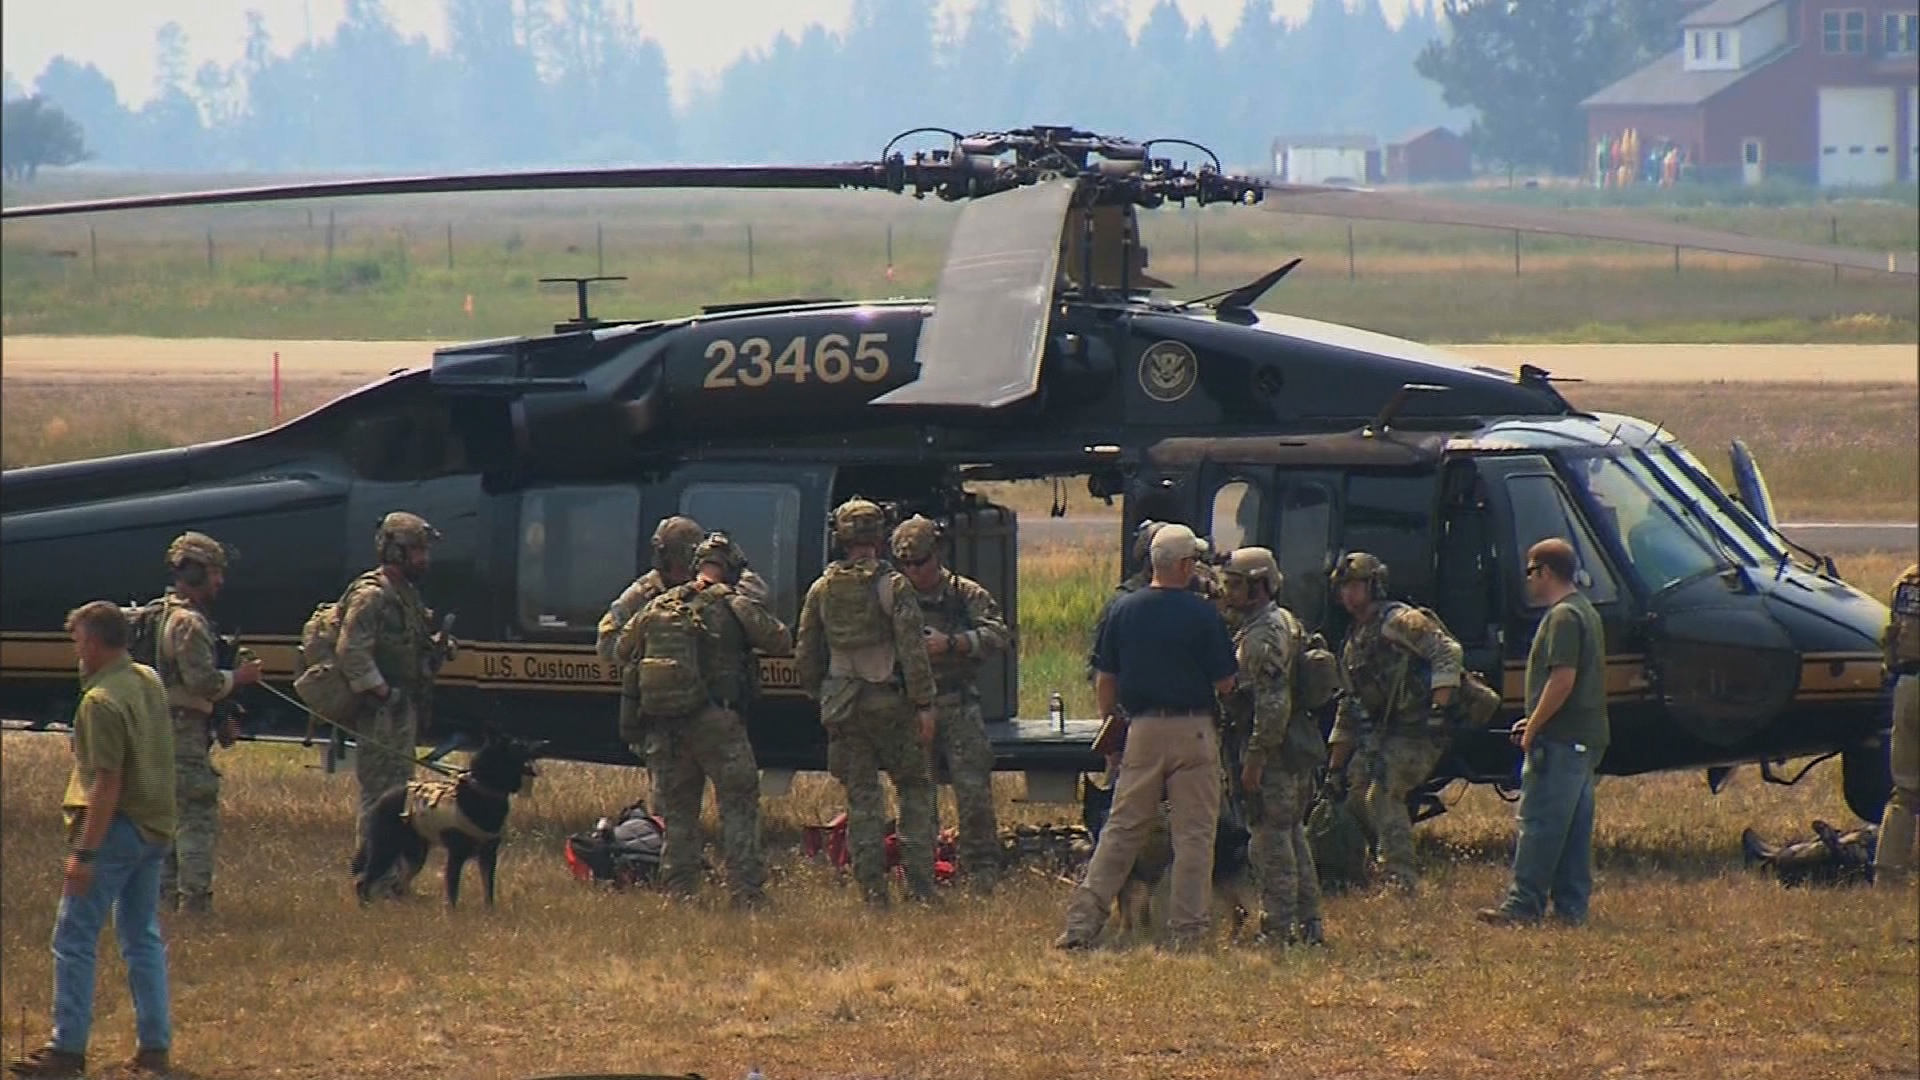 Pictured: Crews prepare to search an area near Morehead Lake, Idaho.   A massive manhunt that spanned 1,000 miles ended in gunfire in the Idaho wild late Saturday afternoon, August 10, 2013, -- shots that ended the life of the family friend who was suspected of abducting 16-year-old Hannah Anderson and killing her mother and brother. The teenager was rescued near Morehead Lake, Idaho, where an FBI tactical agent killed her alleged kidnapper, James DiMaggio, around 5:20 p.m (7:20 p.m. ET), authorities said.